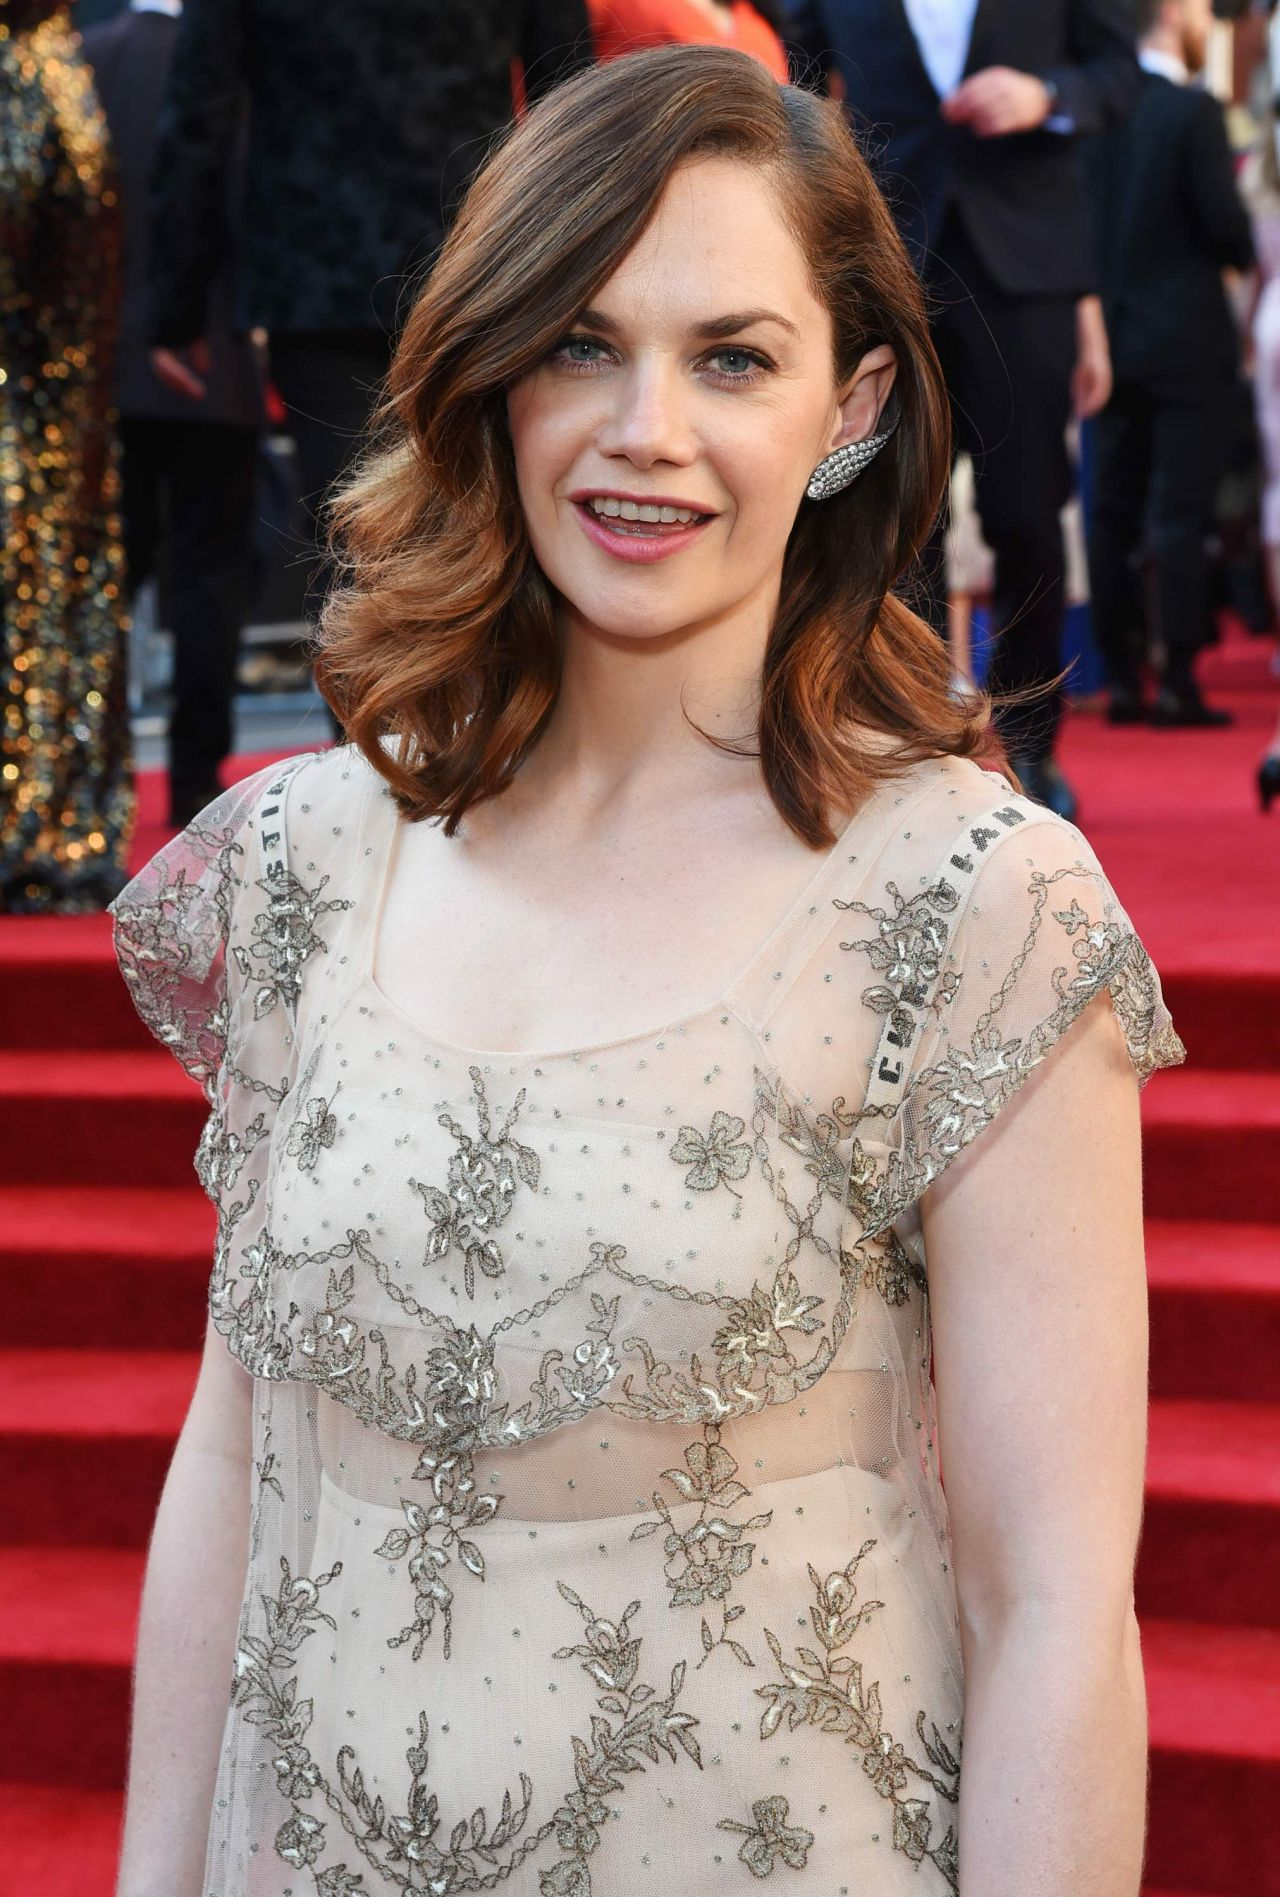 Ruth Wilson: Ruth Wilson On Red Carpet At Olivier Awards 2017 In London